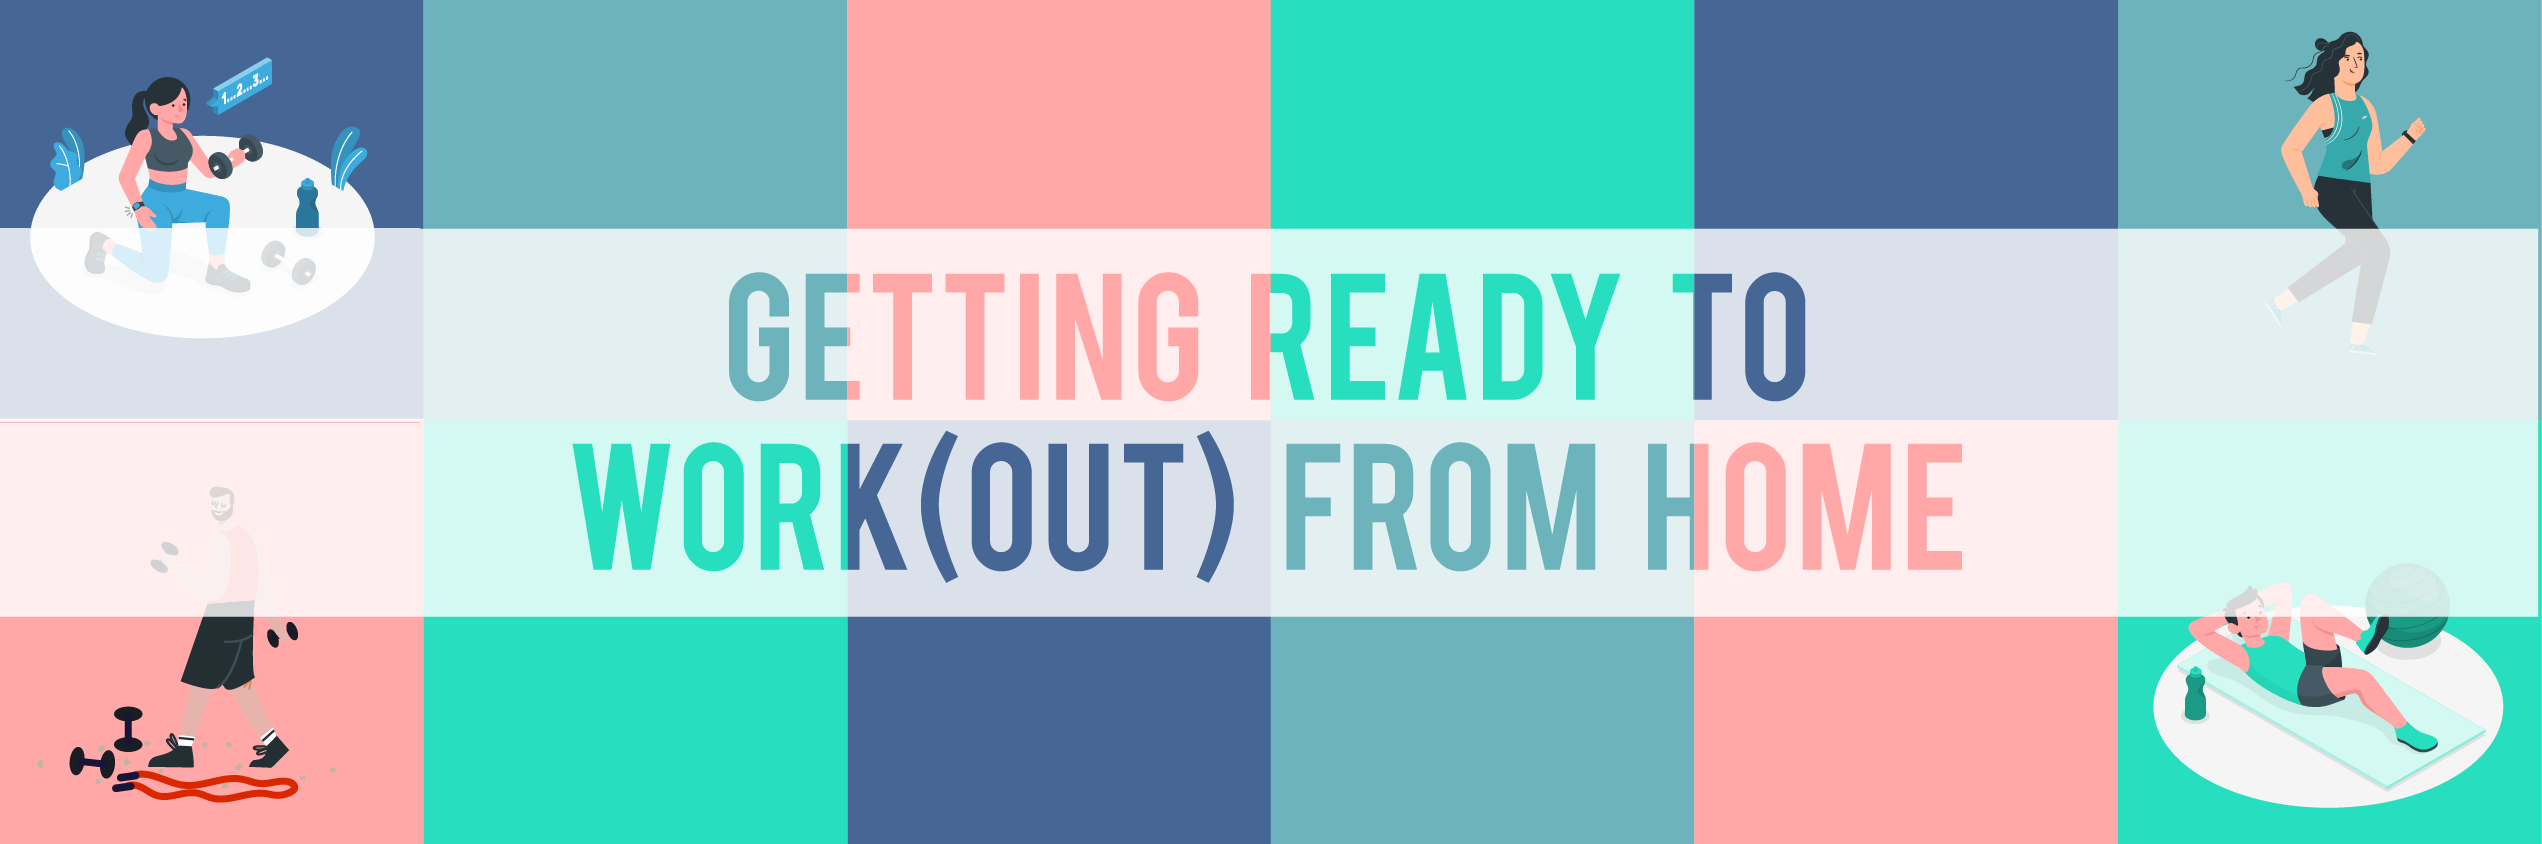 Getting ready to work(out) at home